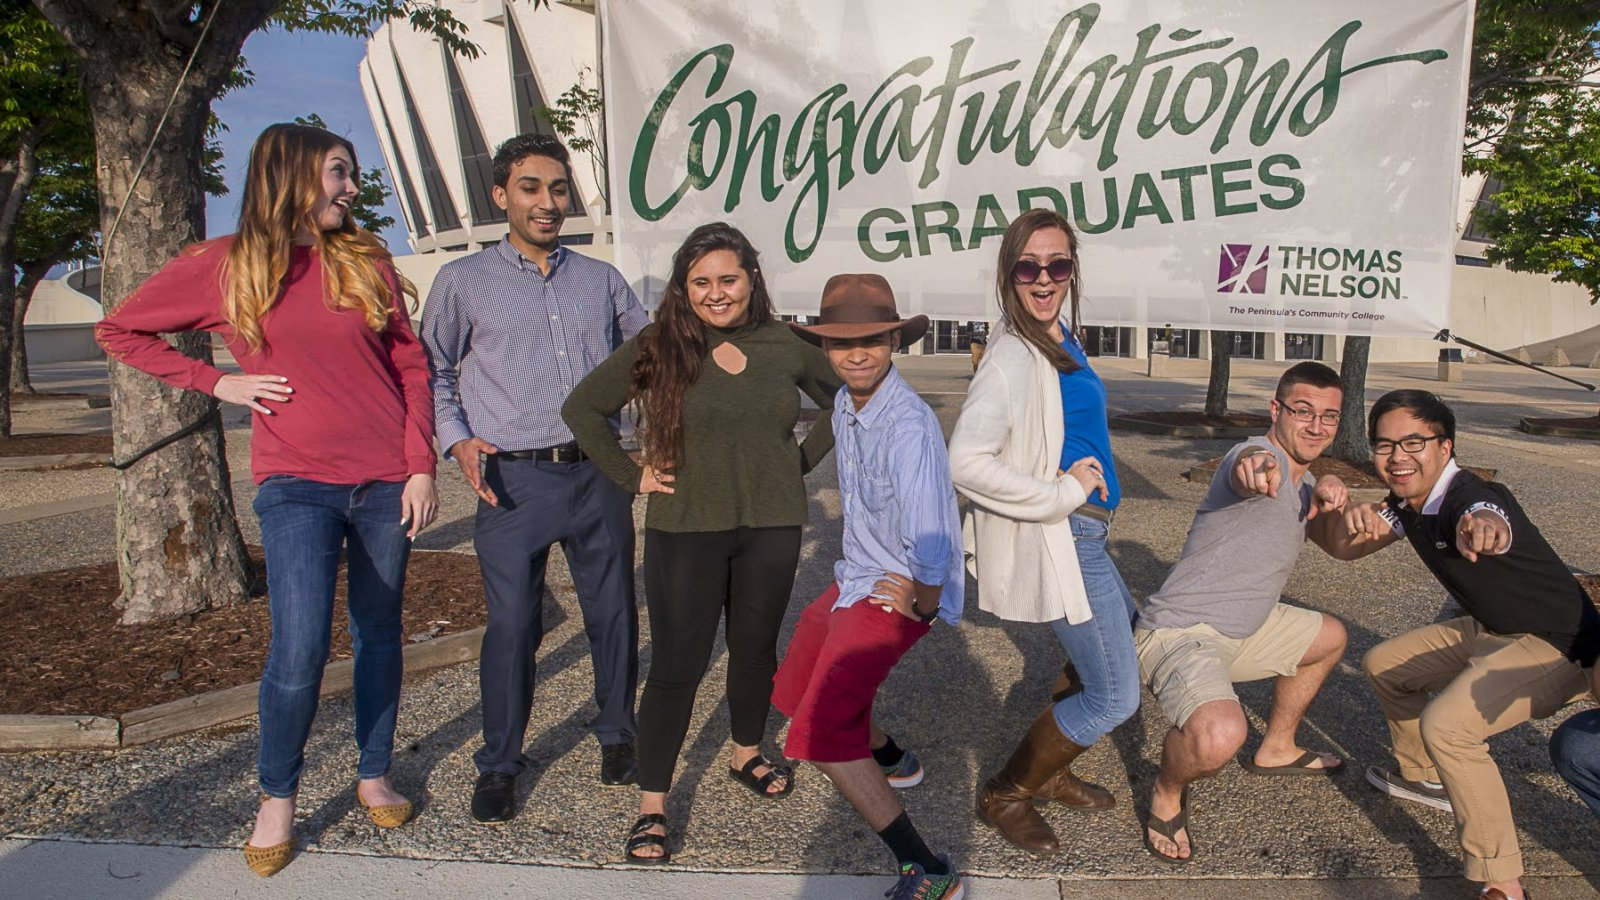 Graduates in front of sign Congratulating Grads at Coliseum